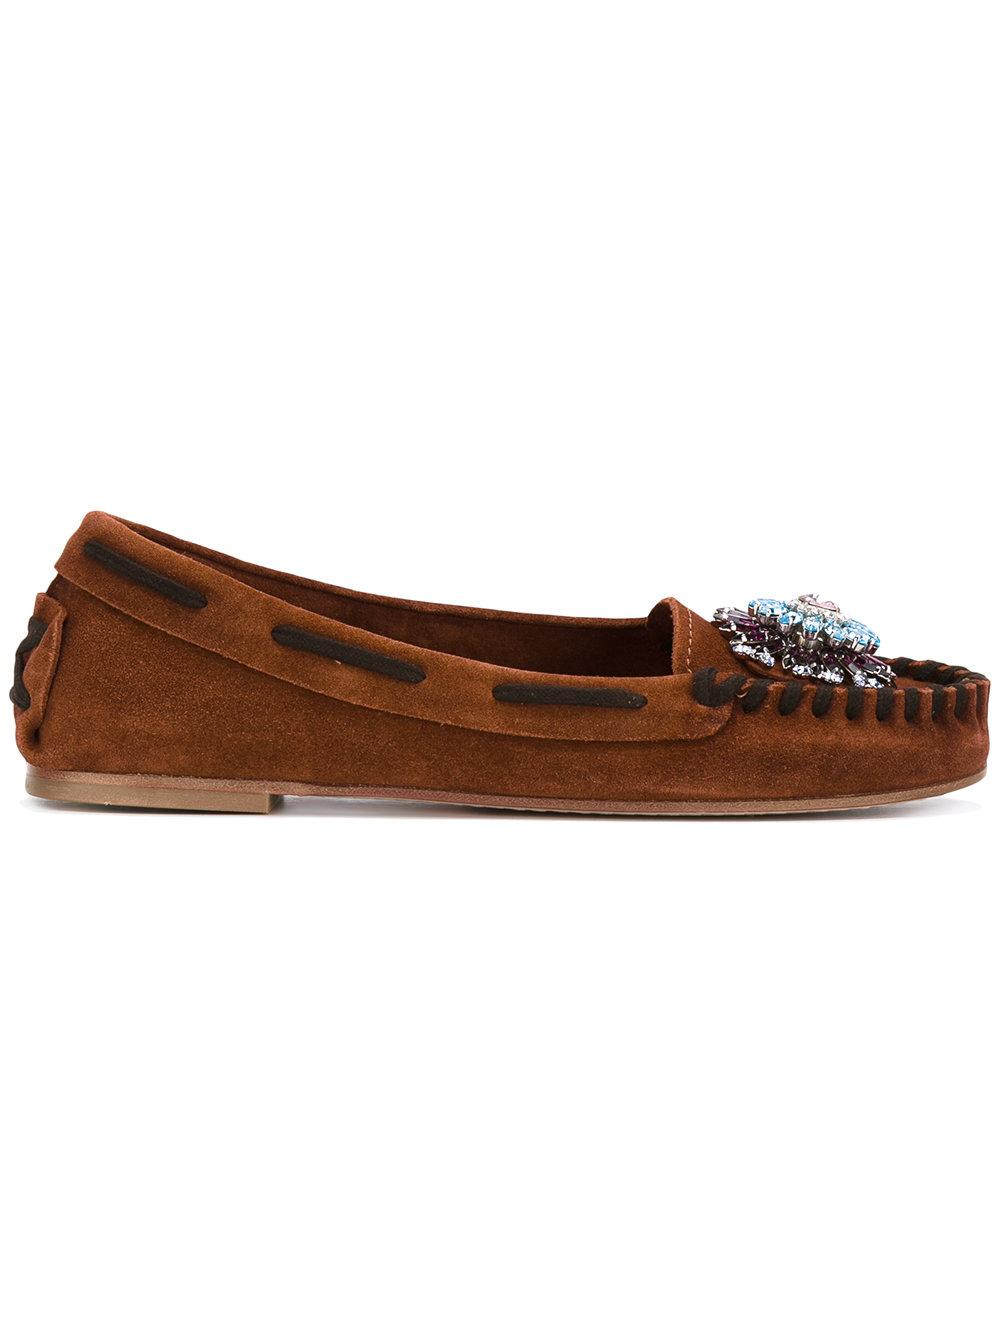 1e6fb2577ed Miu Miu - Flower Detail Loafers - Women - Leather suede - 40 in ...